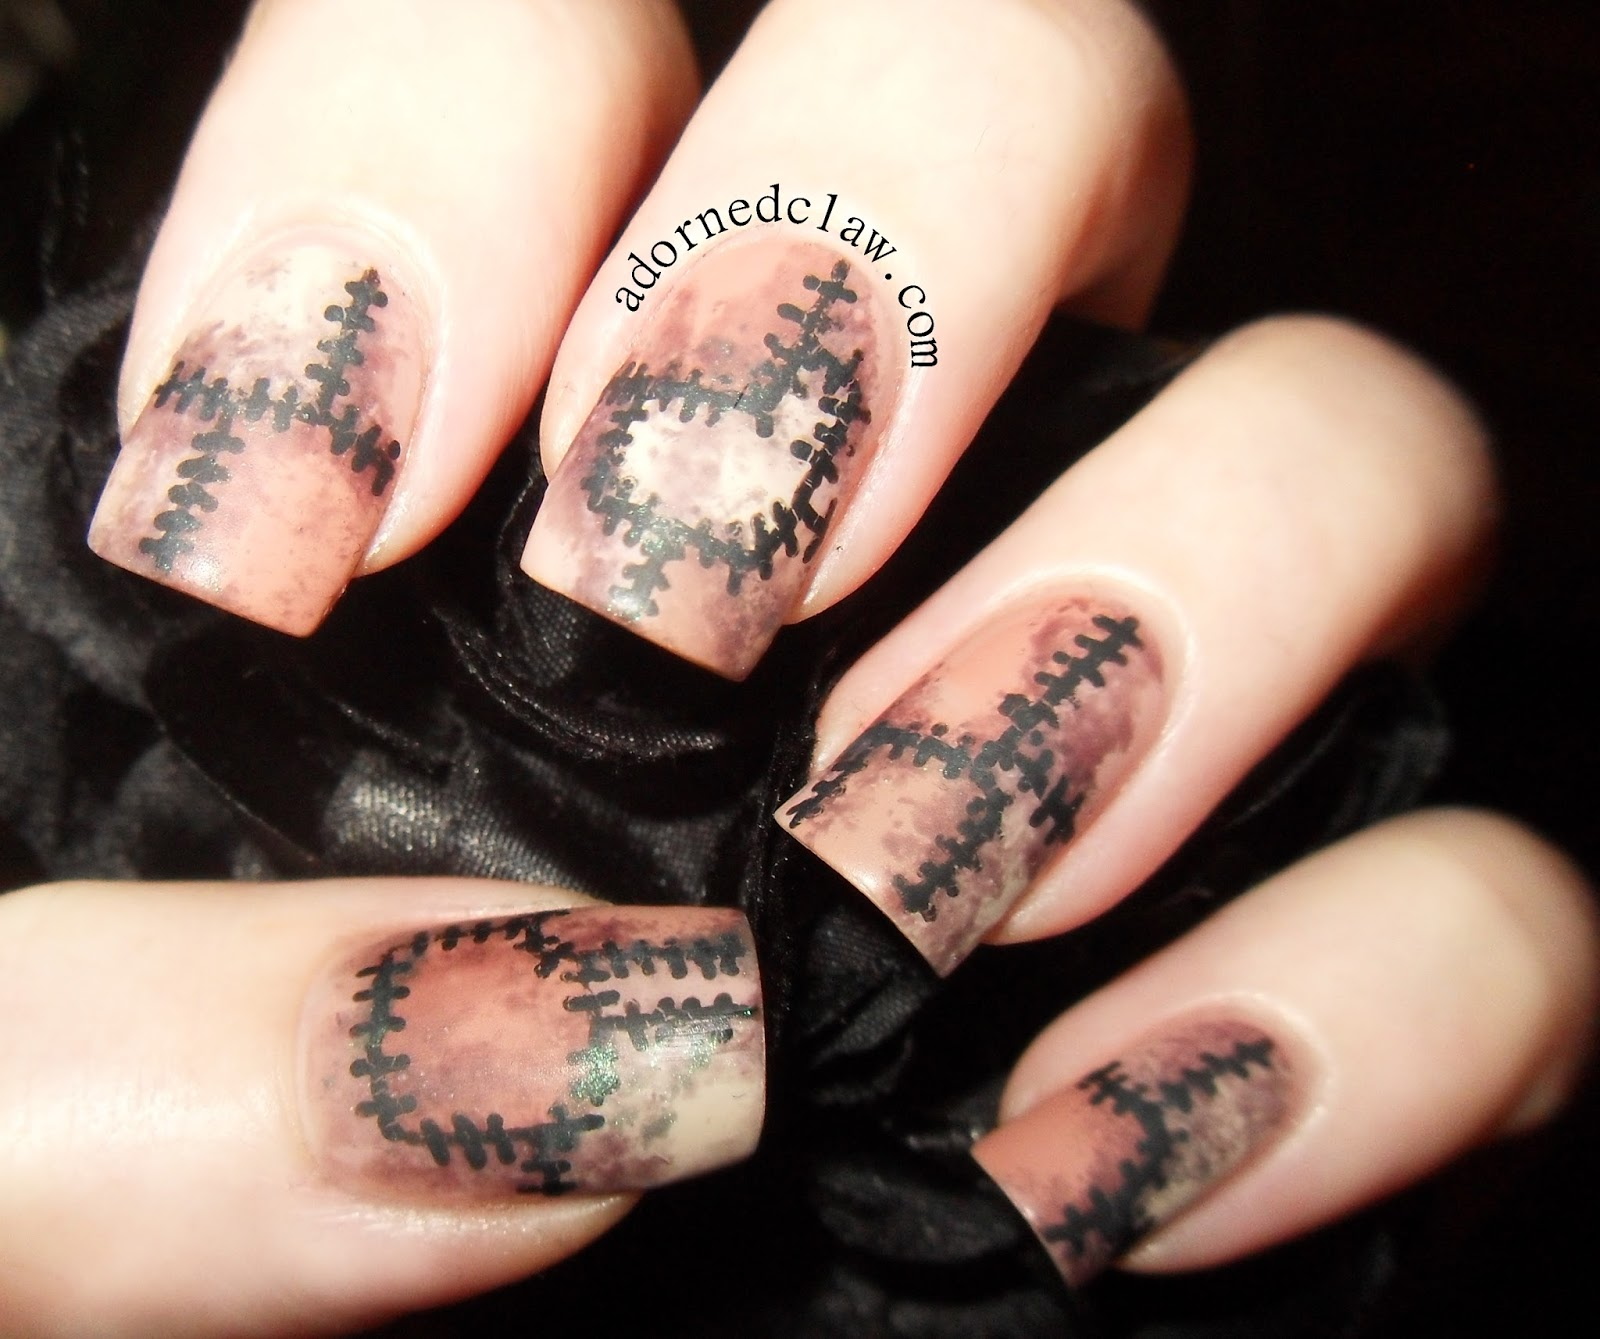 21 Spooky Nail Art Ideas for Halloween 2014